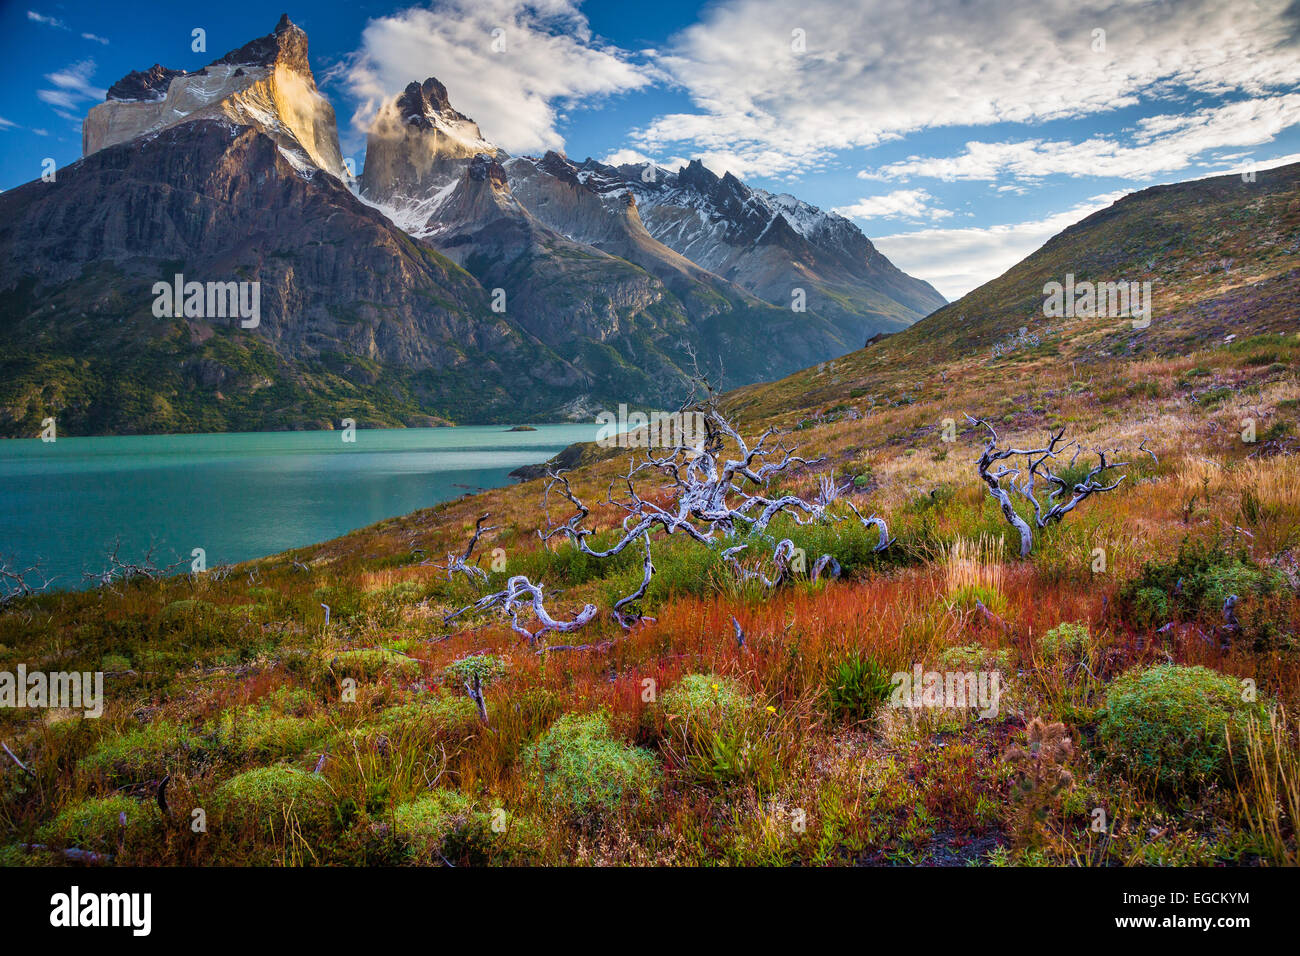 Los Cuernos towering above Lago Nordenskjold, Torres del Paine, Chilean Patagonia Stock Photo